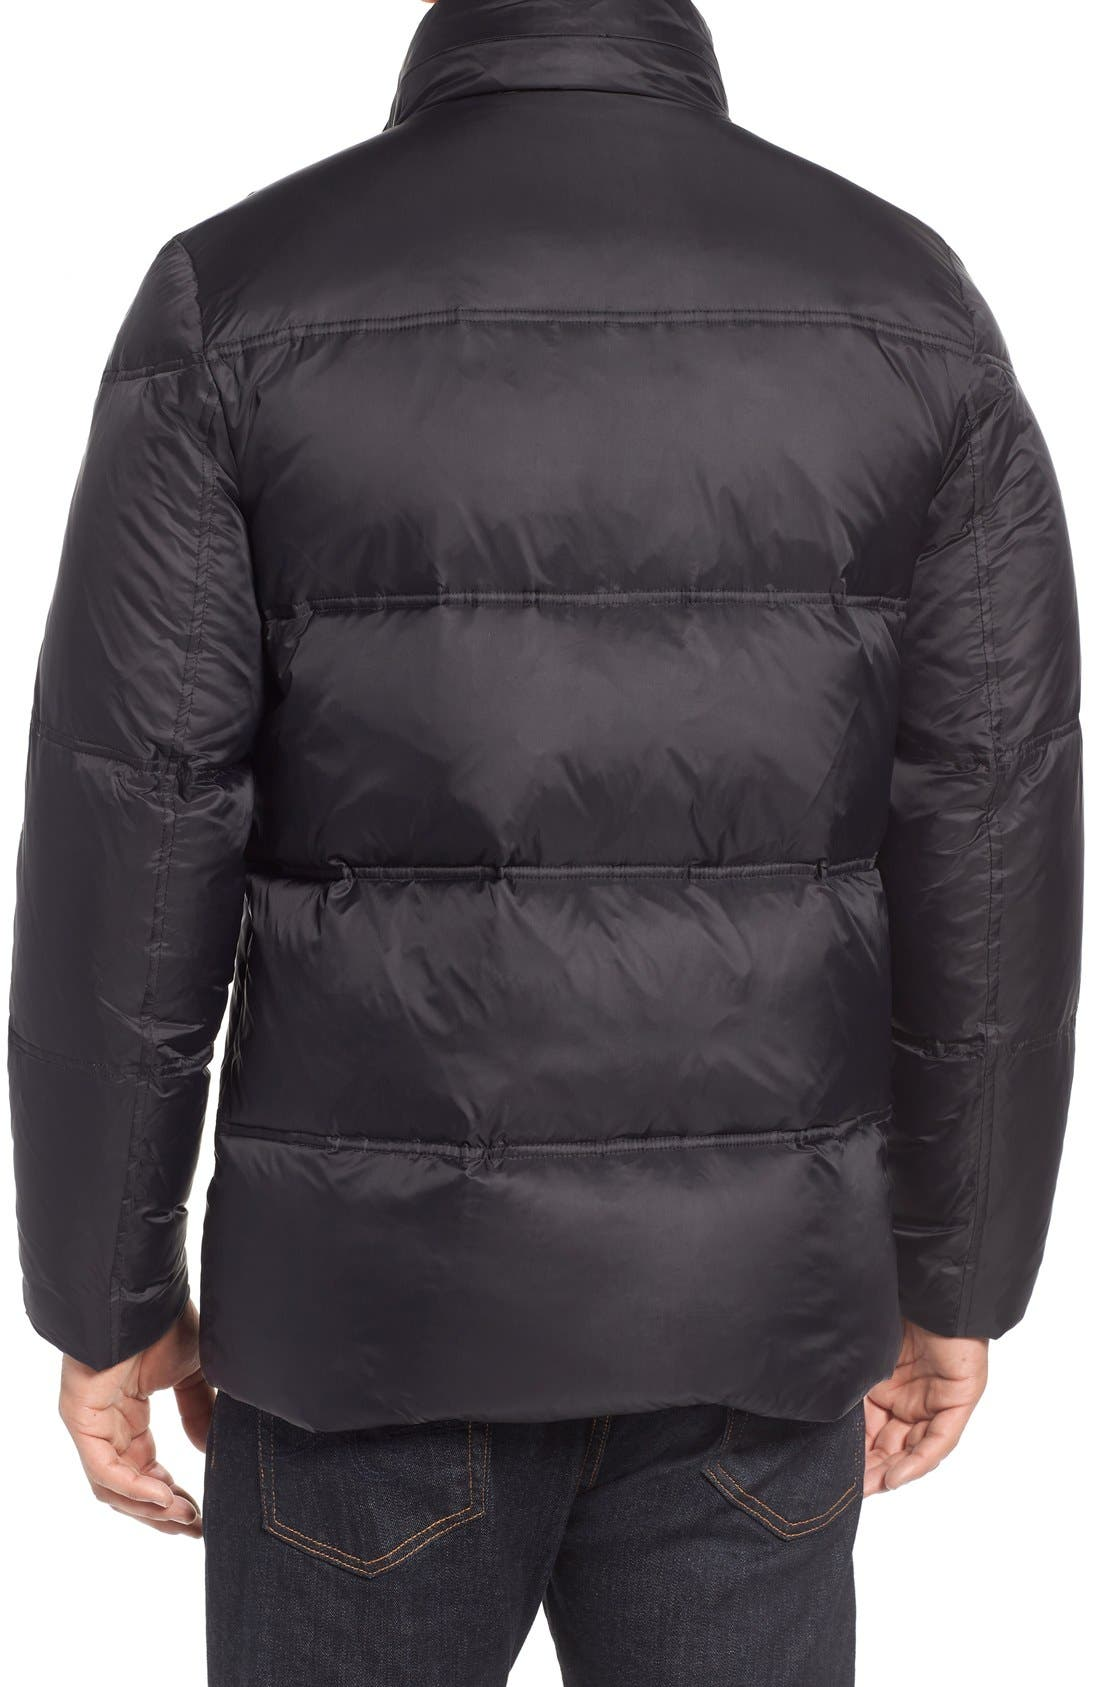 Quilted Jacket with Convertible Neck Pillow,                             Alternate thumbnail 4, color,